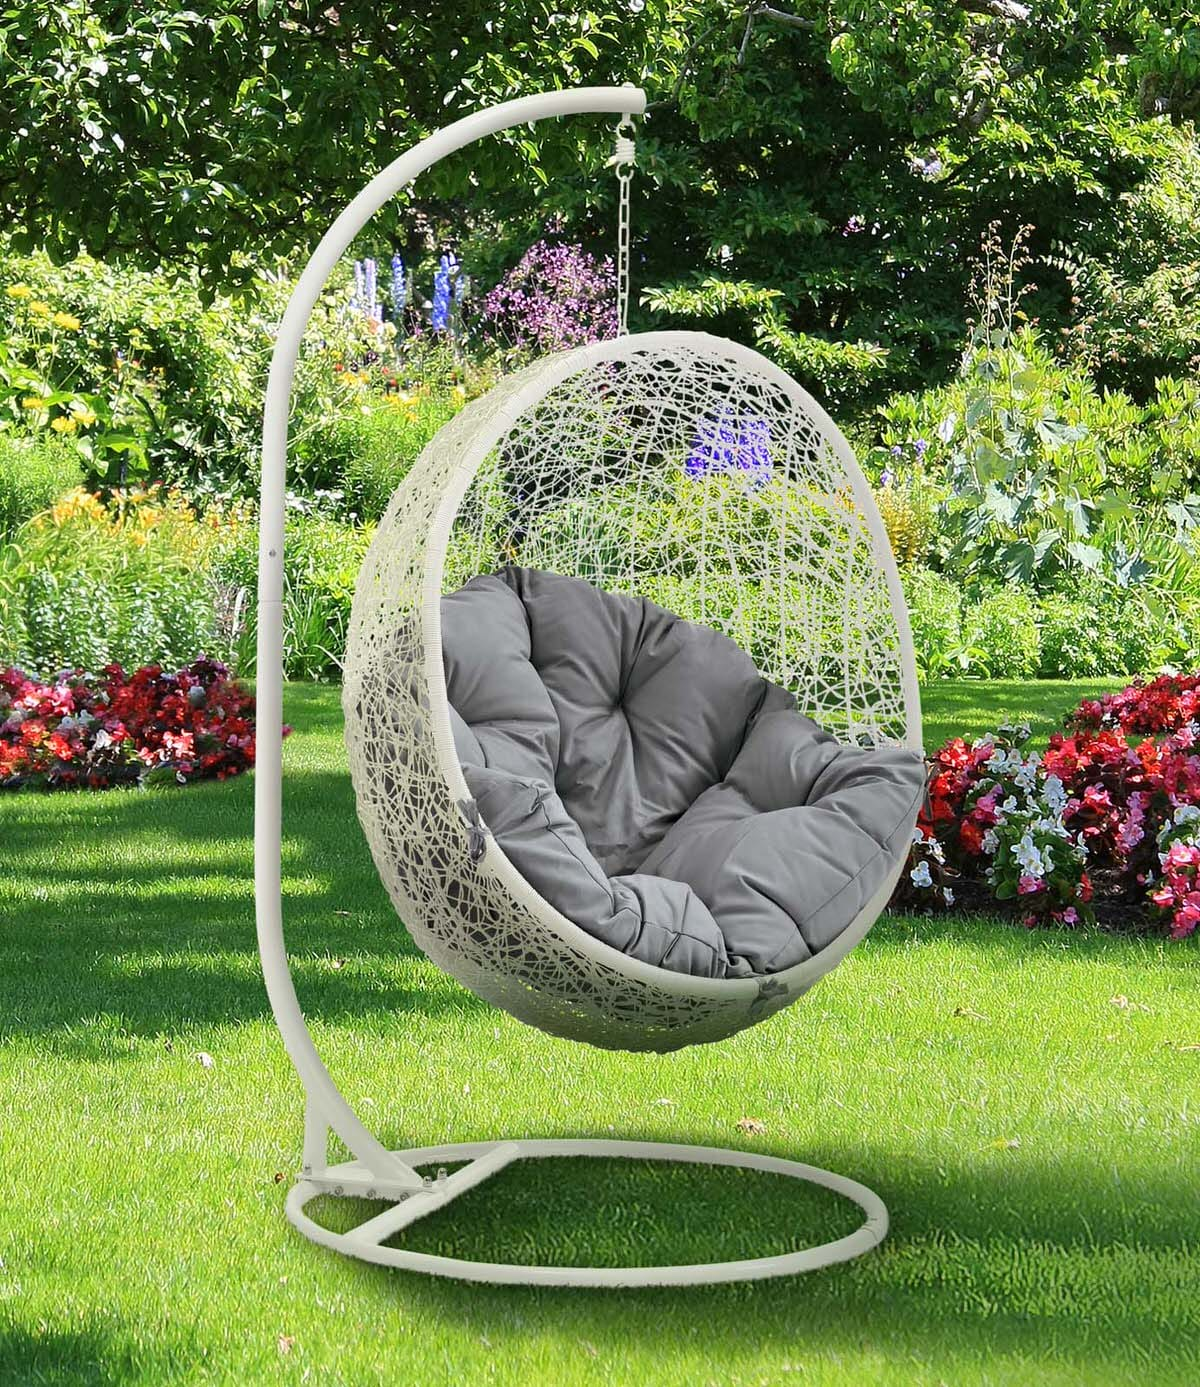 & Hide Outdoor Patio Swing Chair With Stand White Gray by Modern Living